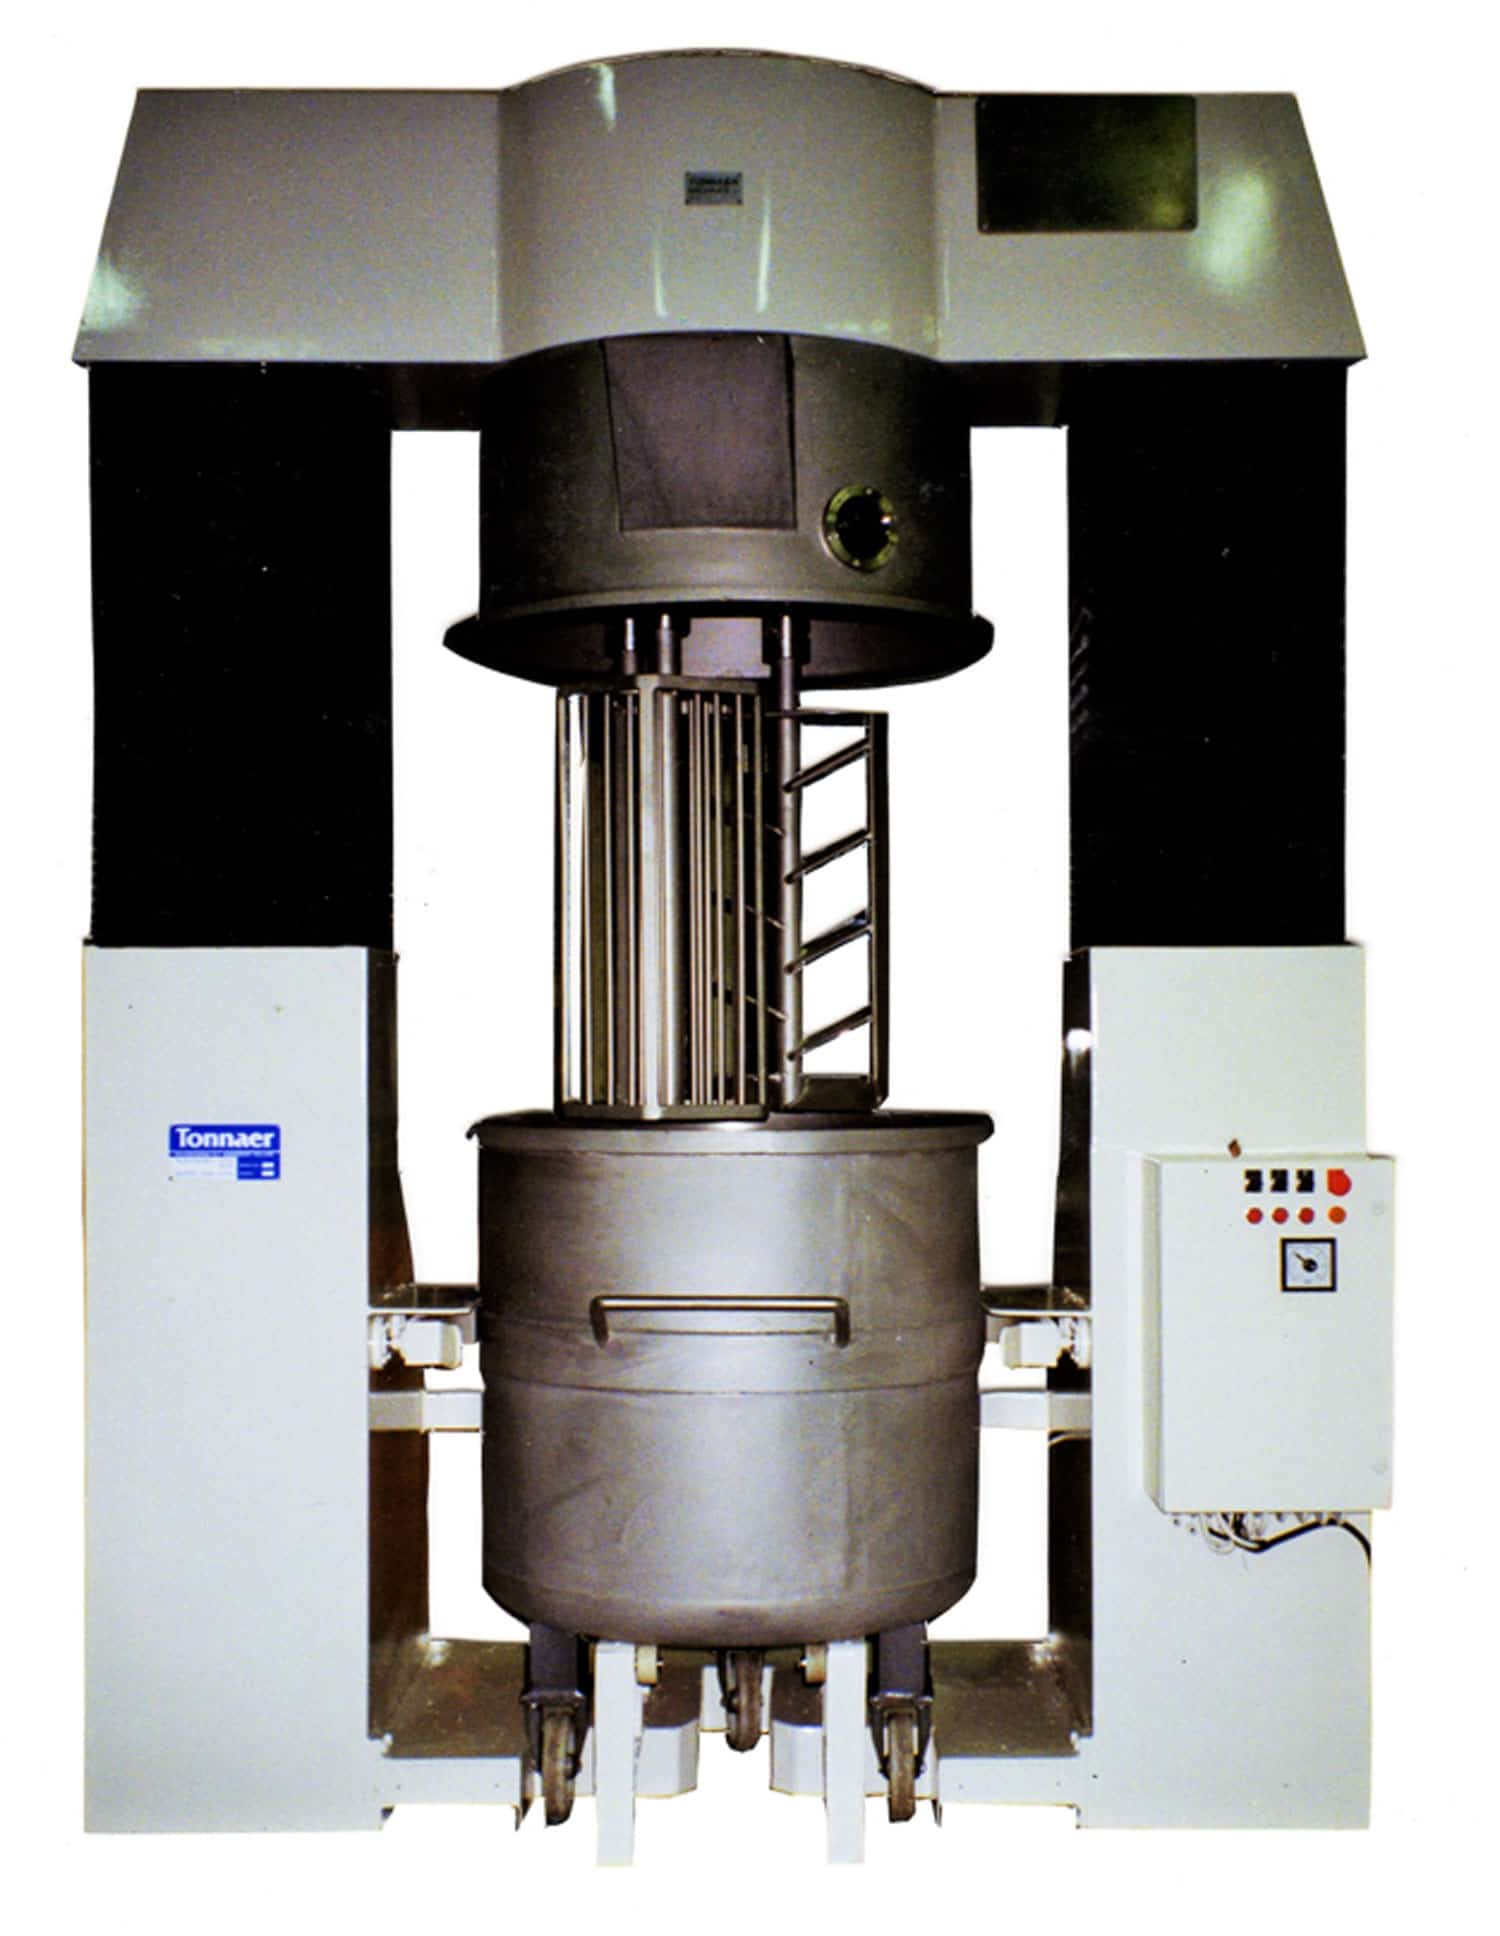 Double planetary mixer - Tonnaer Mixing Systems